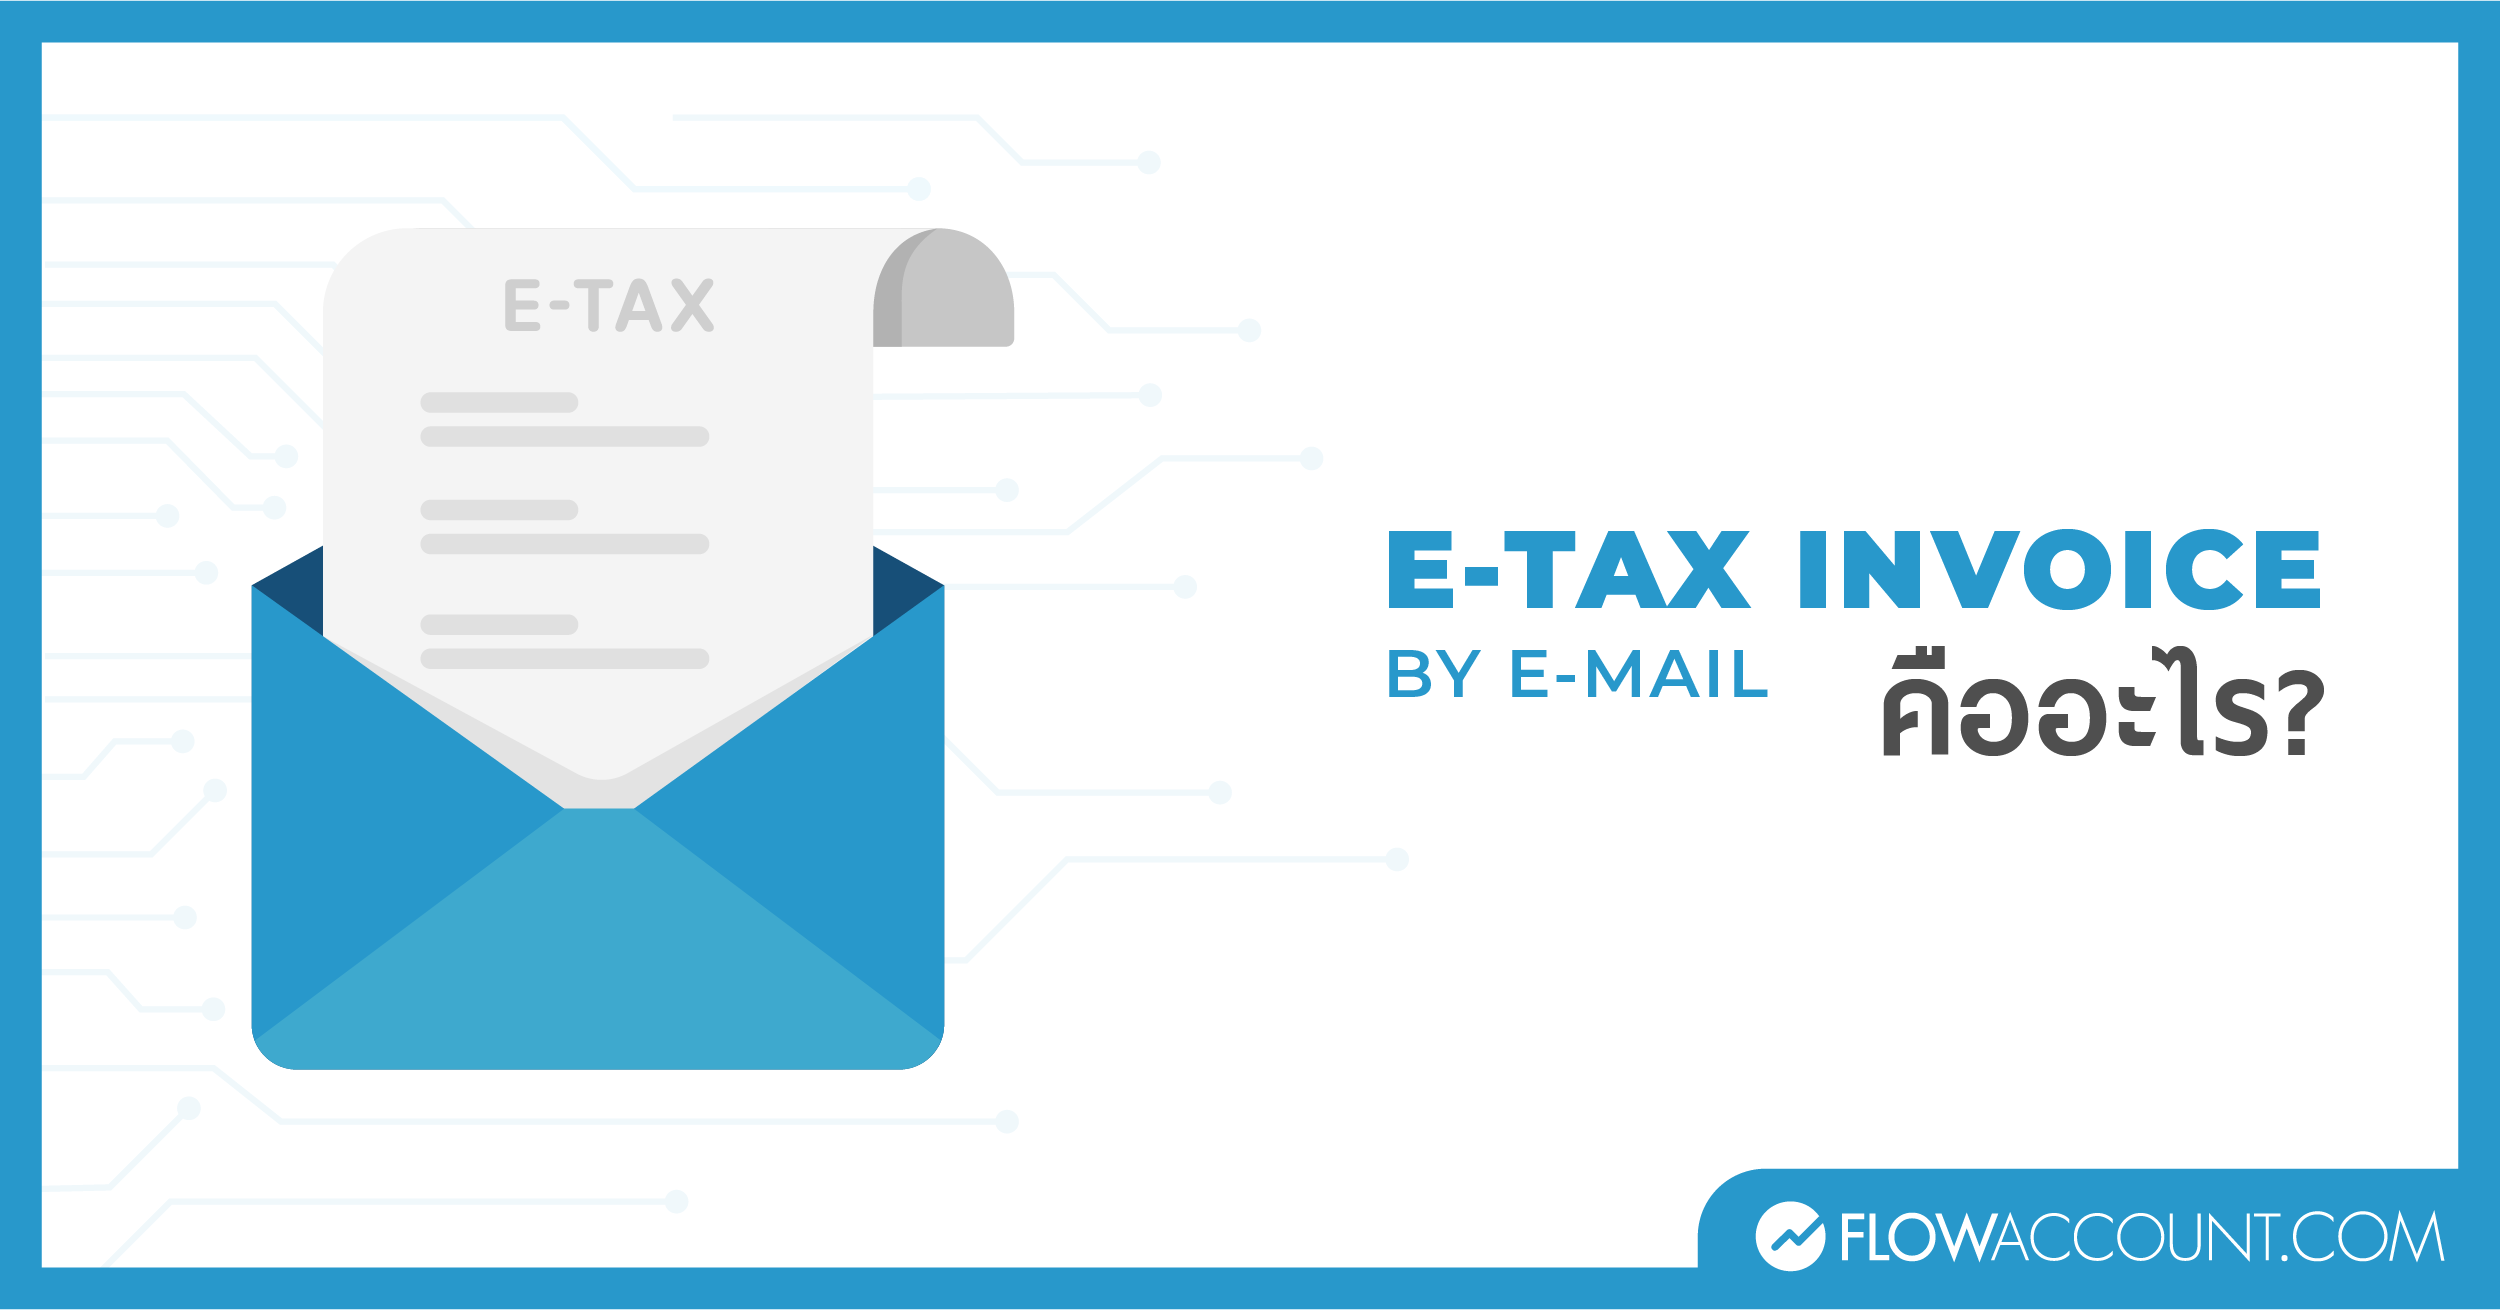 E-Tax Invoice by E-mail